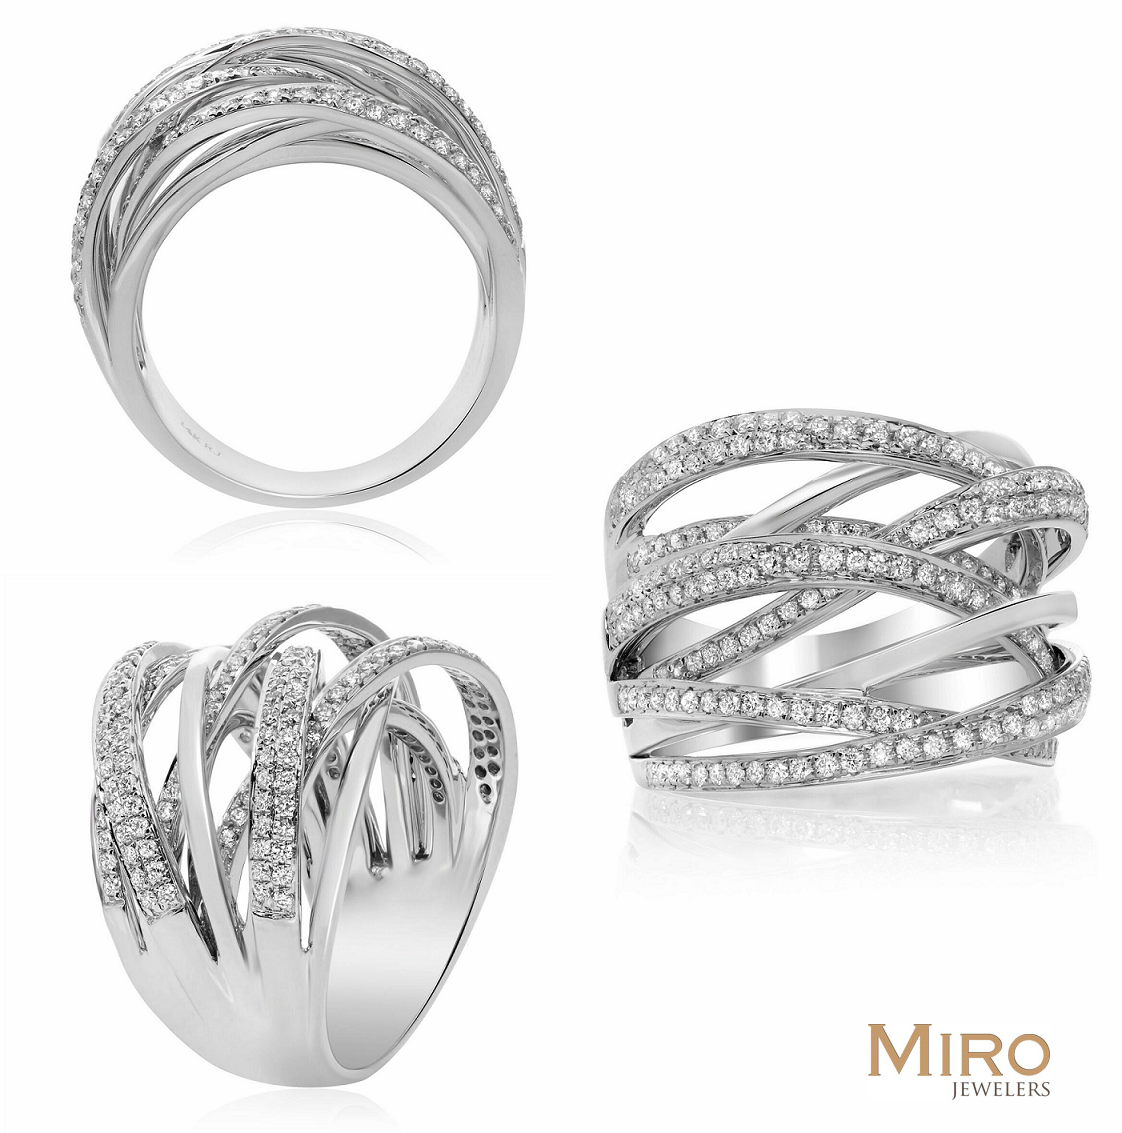 Diamond Rings For Sale Denver: Miro Jewelers, Located In Denver, Colorado, Announces